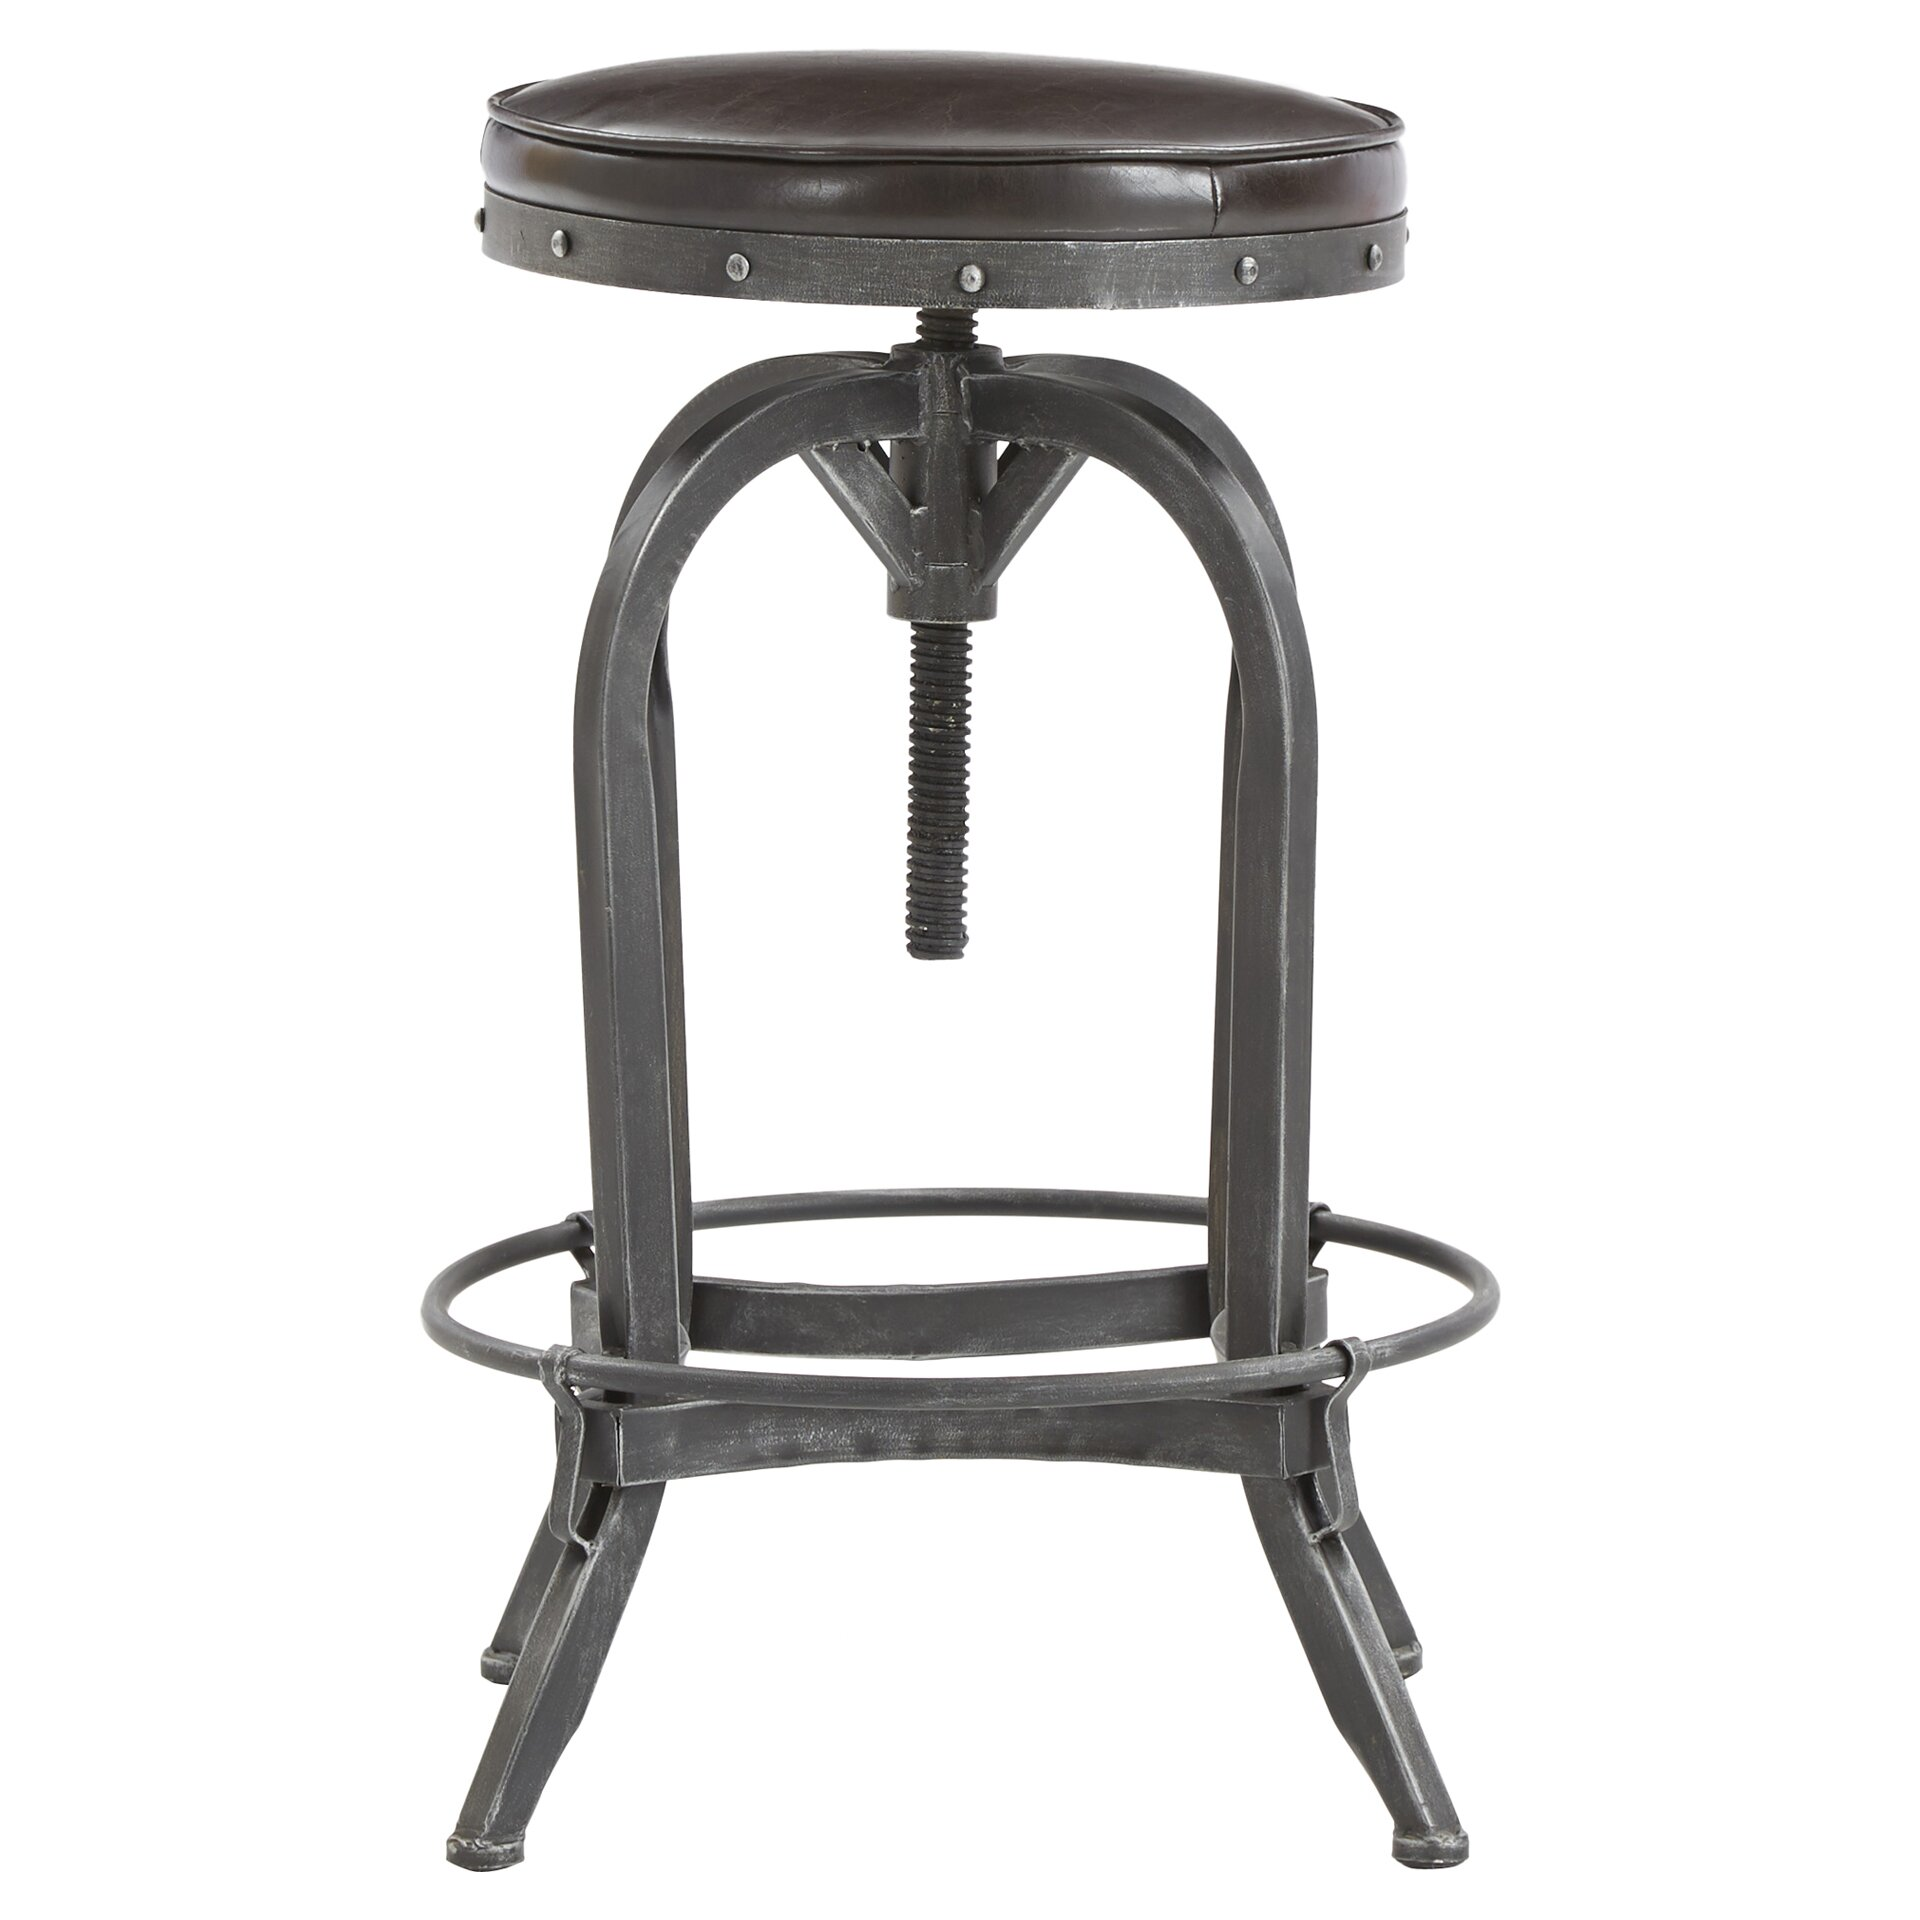 Mercury Row Adjustable Height Swivel Bar Stool amp Reviews  : Adjustable Height Bar Stool MCRR1563 from www.wayfair.com size 1920 x 1920 jpeg 255kB